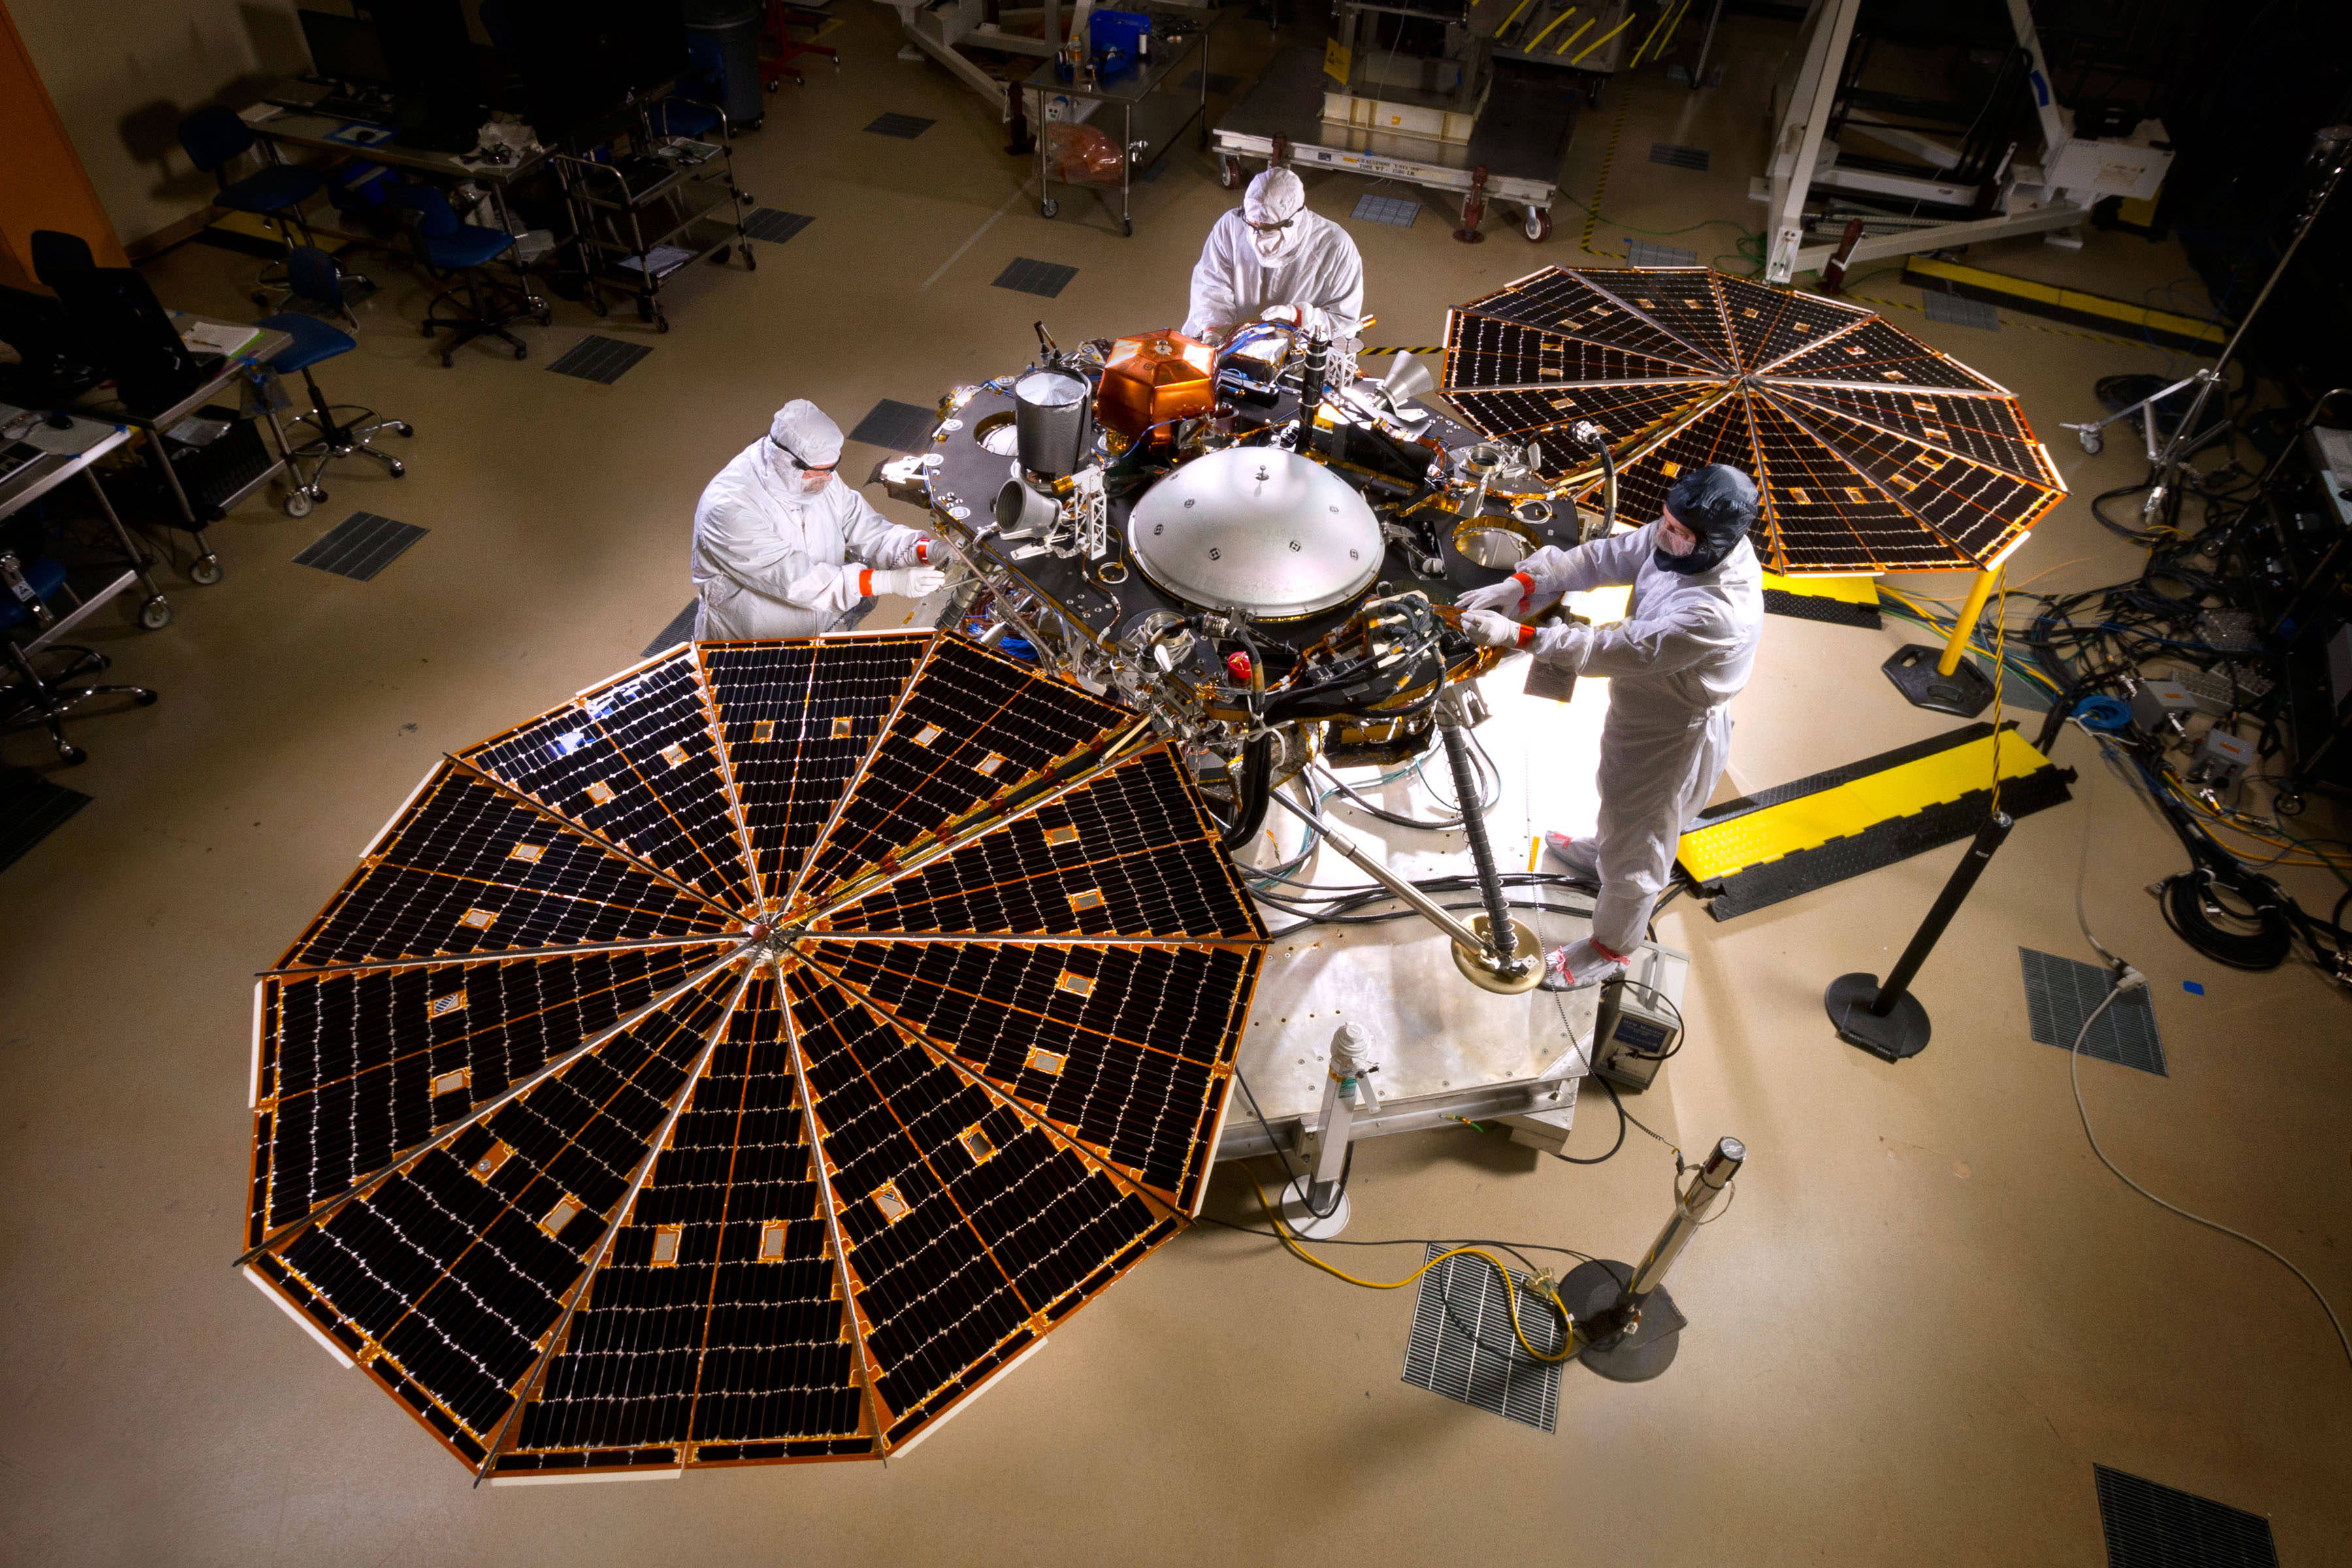 NASA's InSight Mars lander spacecraft in a Lockheed Martin clean room near Denver. As part of a series of deployment tests, the spacecraft was commanded to deploy its solar arrays in the clean room to test and verify the exact process that it will use on the surface of Mars.  Credits: NASA/JPL-Caltech/Lockheed Martin